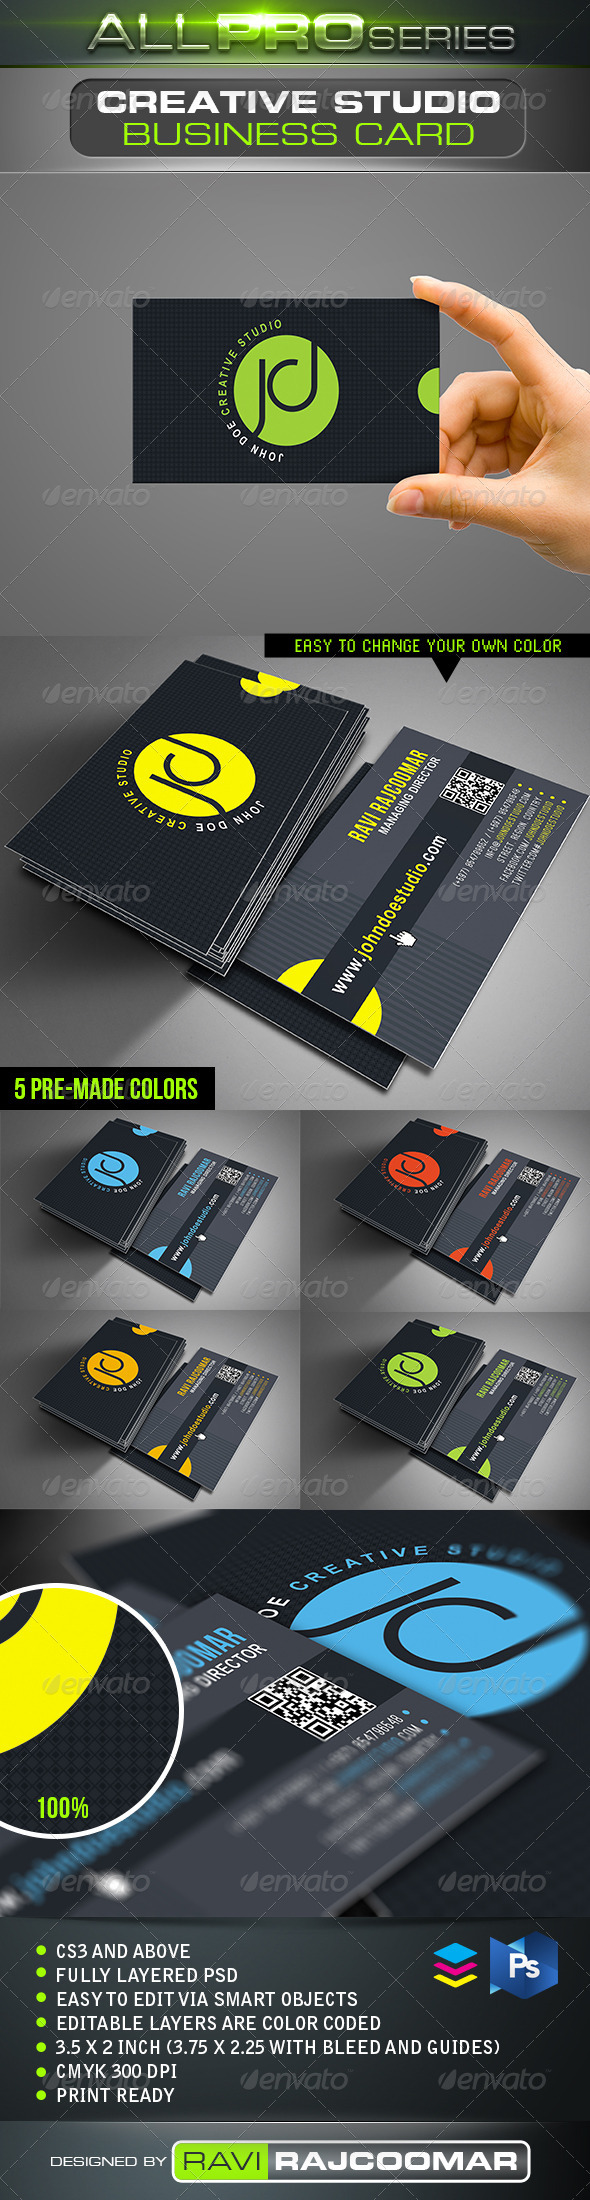 Creative Studio Business Card  - Business Cards Print Templates